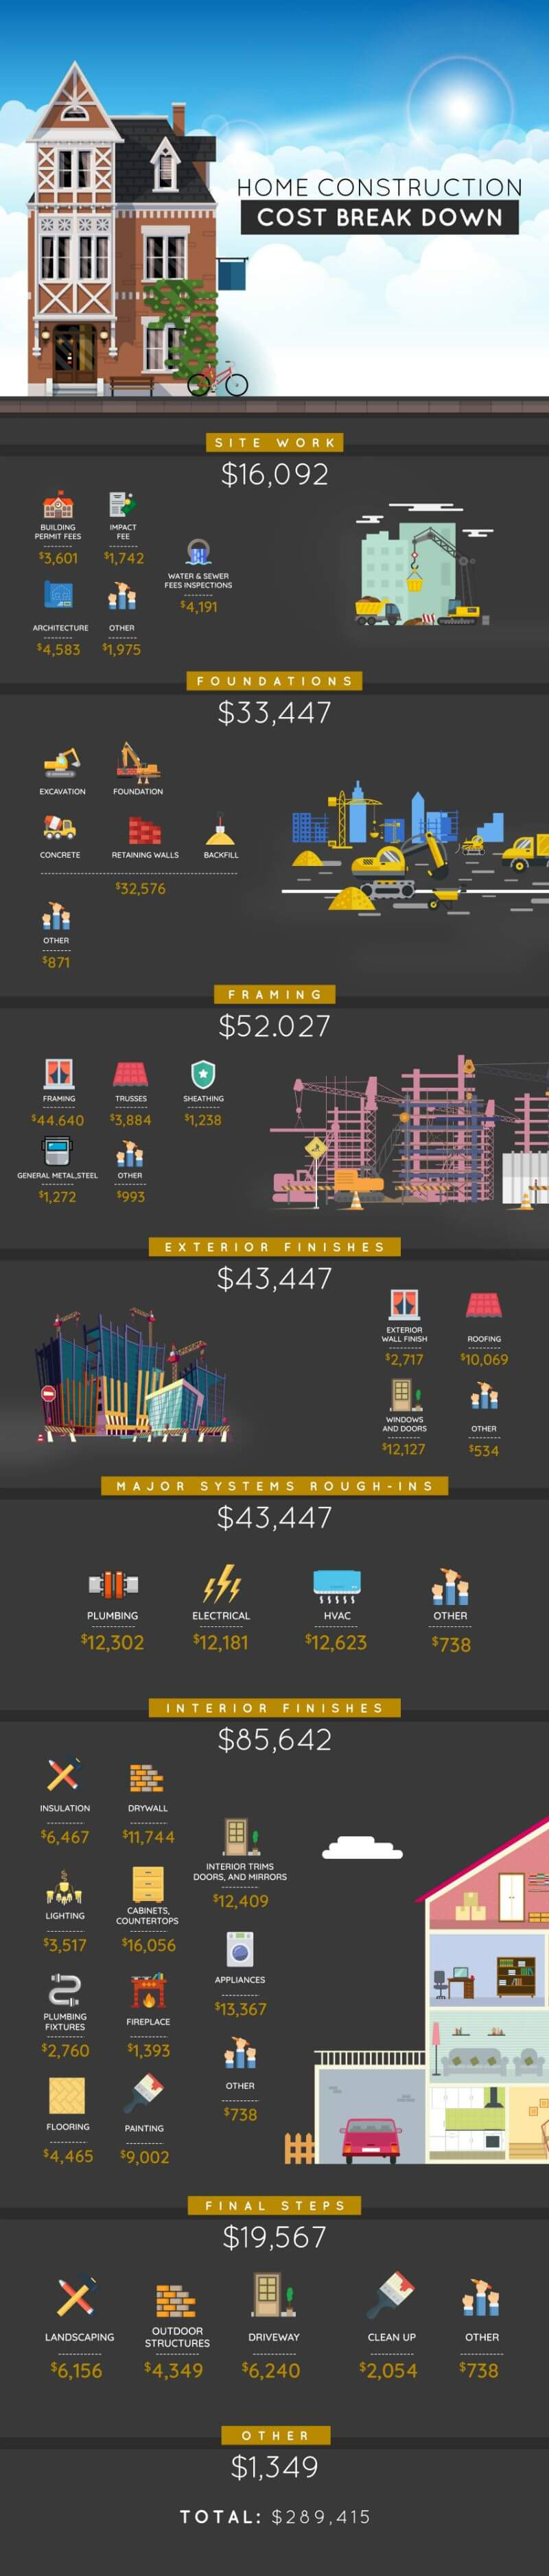 cost to build home infographic1